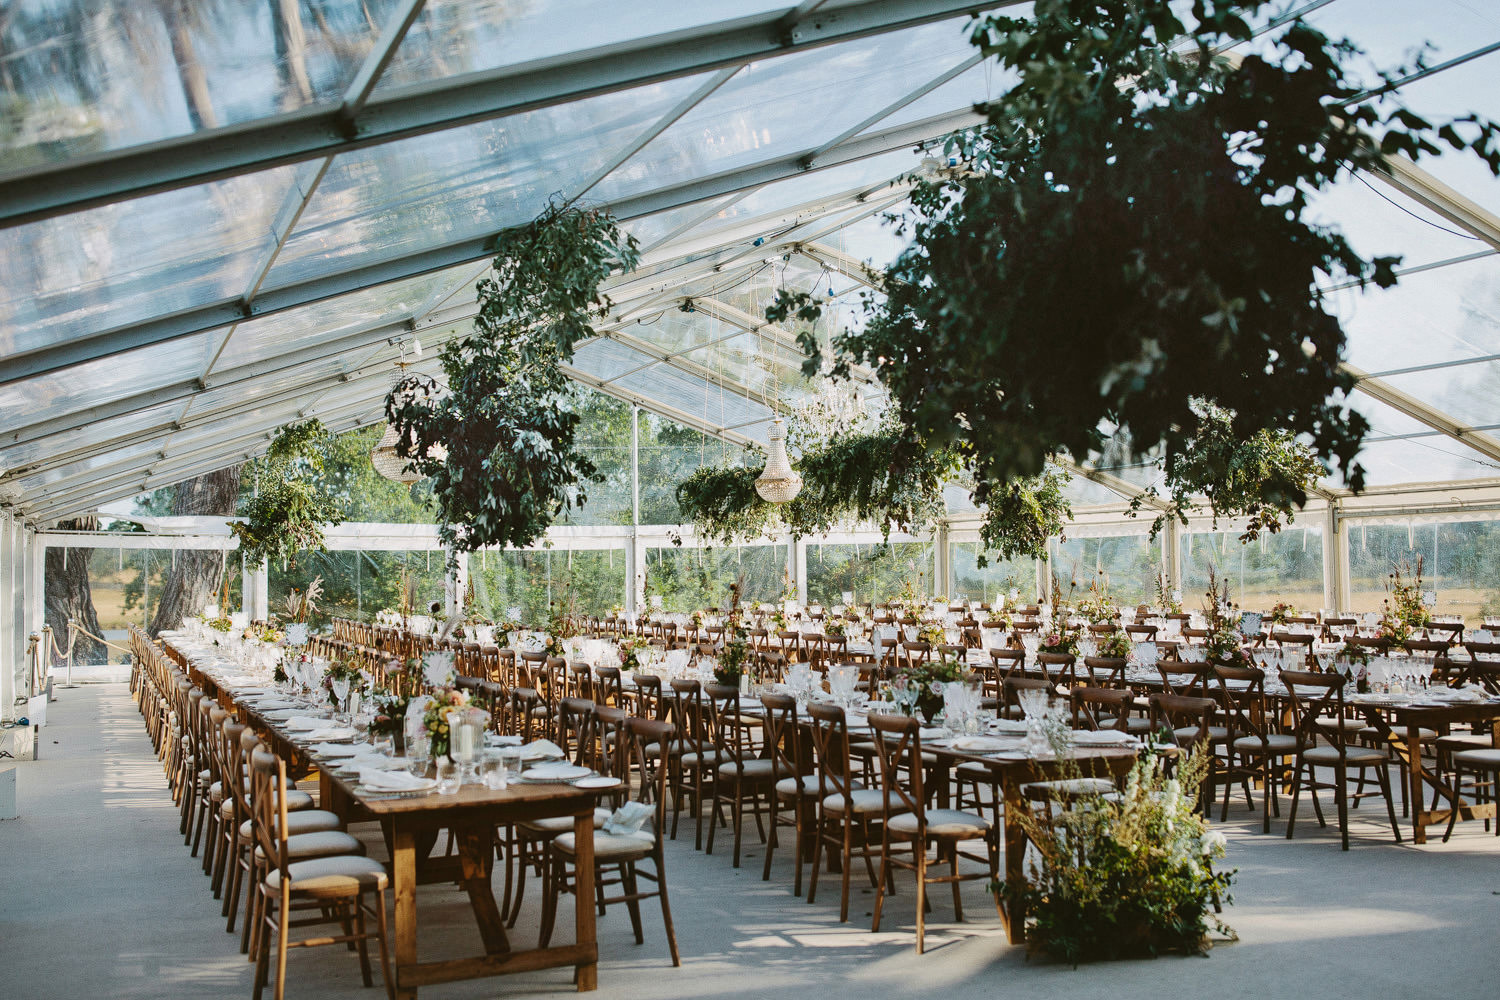 Reception dining room with hanging greens in clear marquee at Wilderness Reserve